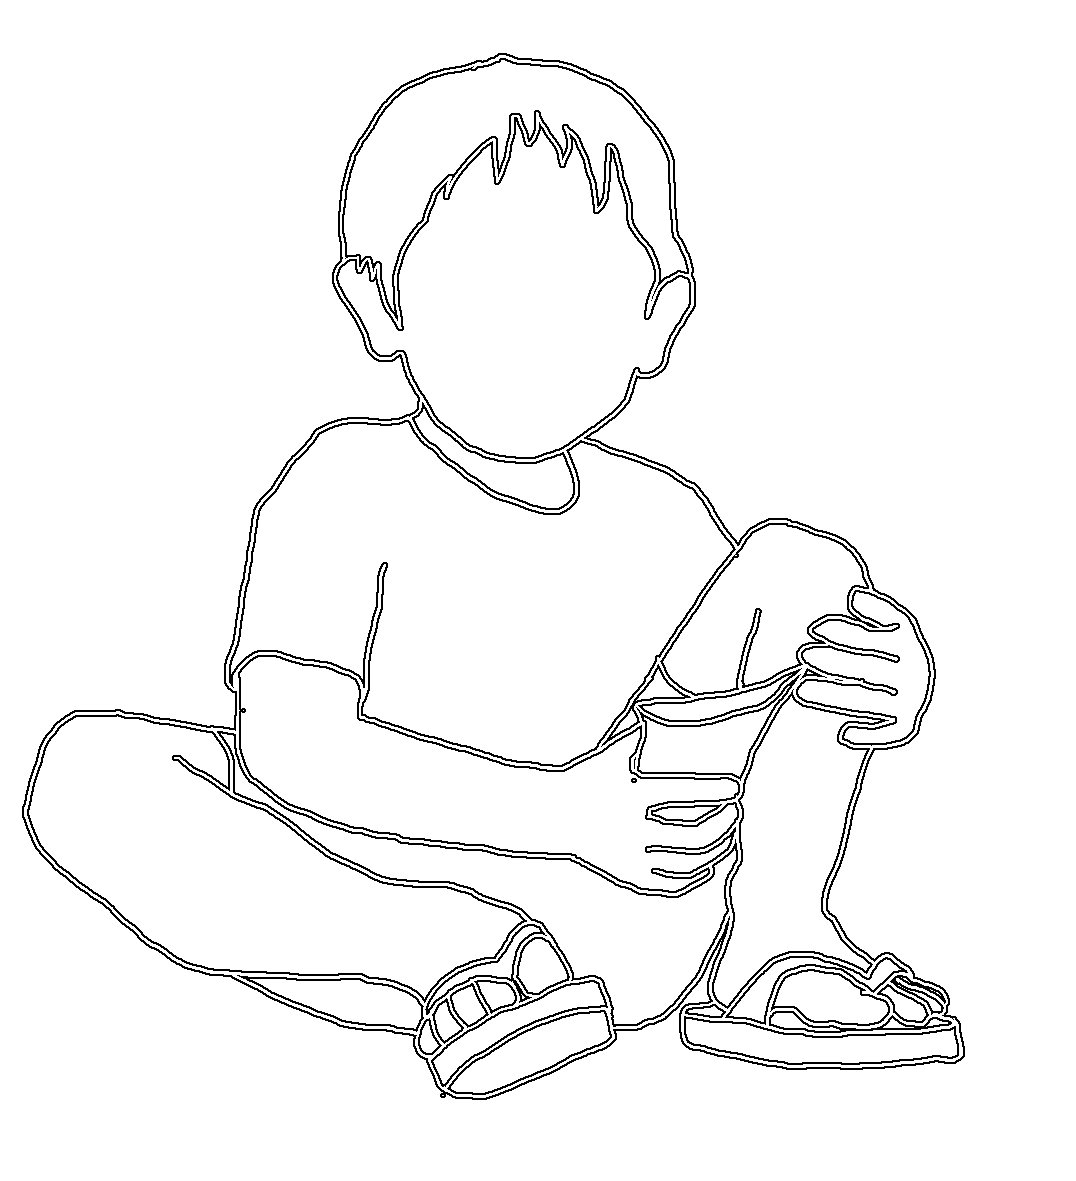 Children sitting criss cross clipart banner freeuse library Boy Sitting Drawing at GetDrawings.com | Free for personal use Boy ... banner freeuse library